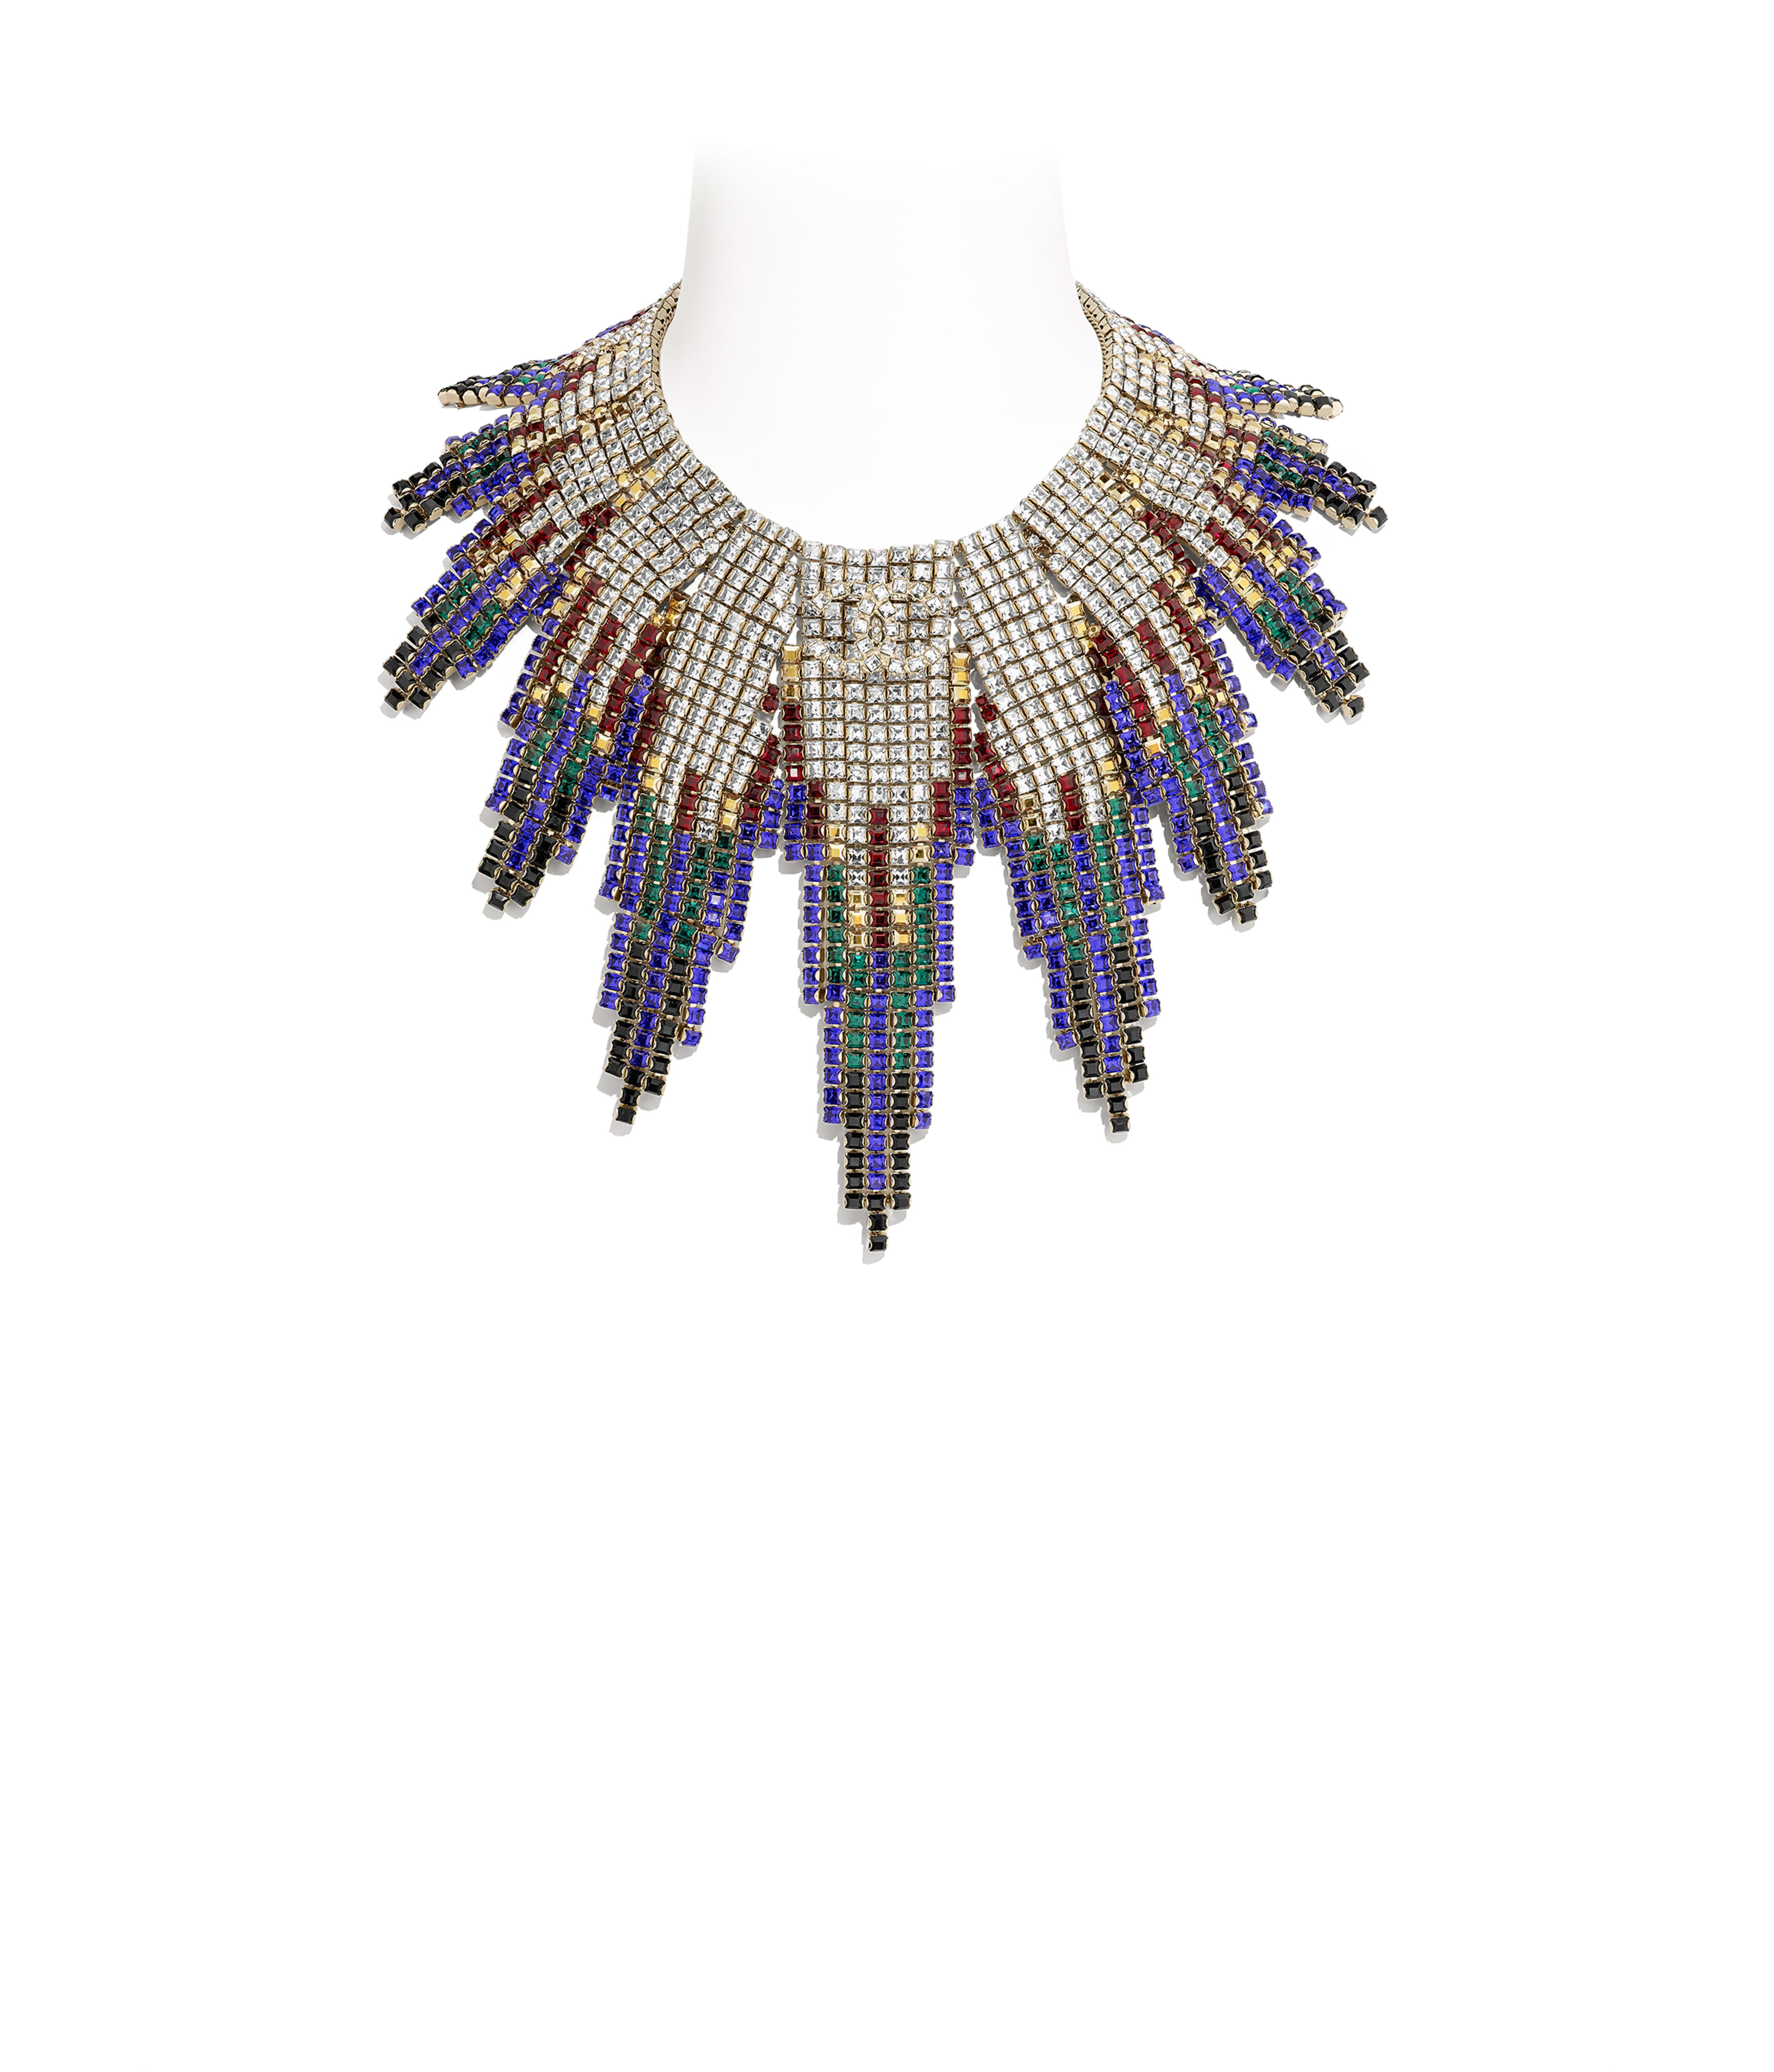 4c6a79ee2 Necklace Metal & Strass, Gold, Black, Red, Blue & Crystal Ref.  AB1634Y02003Z9145